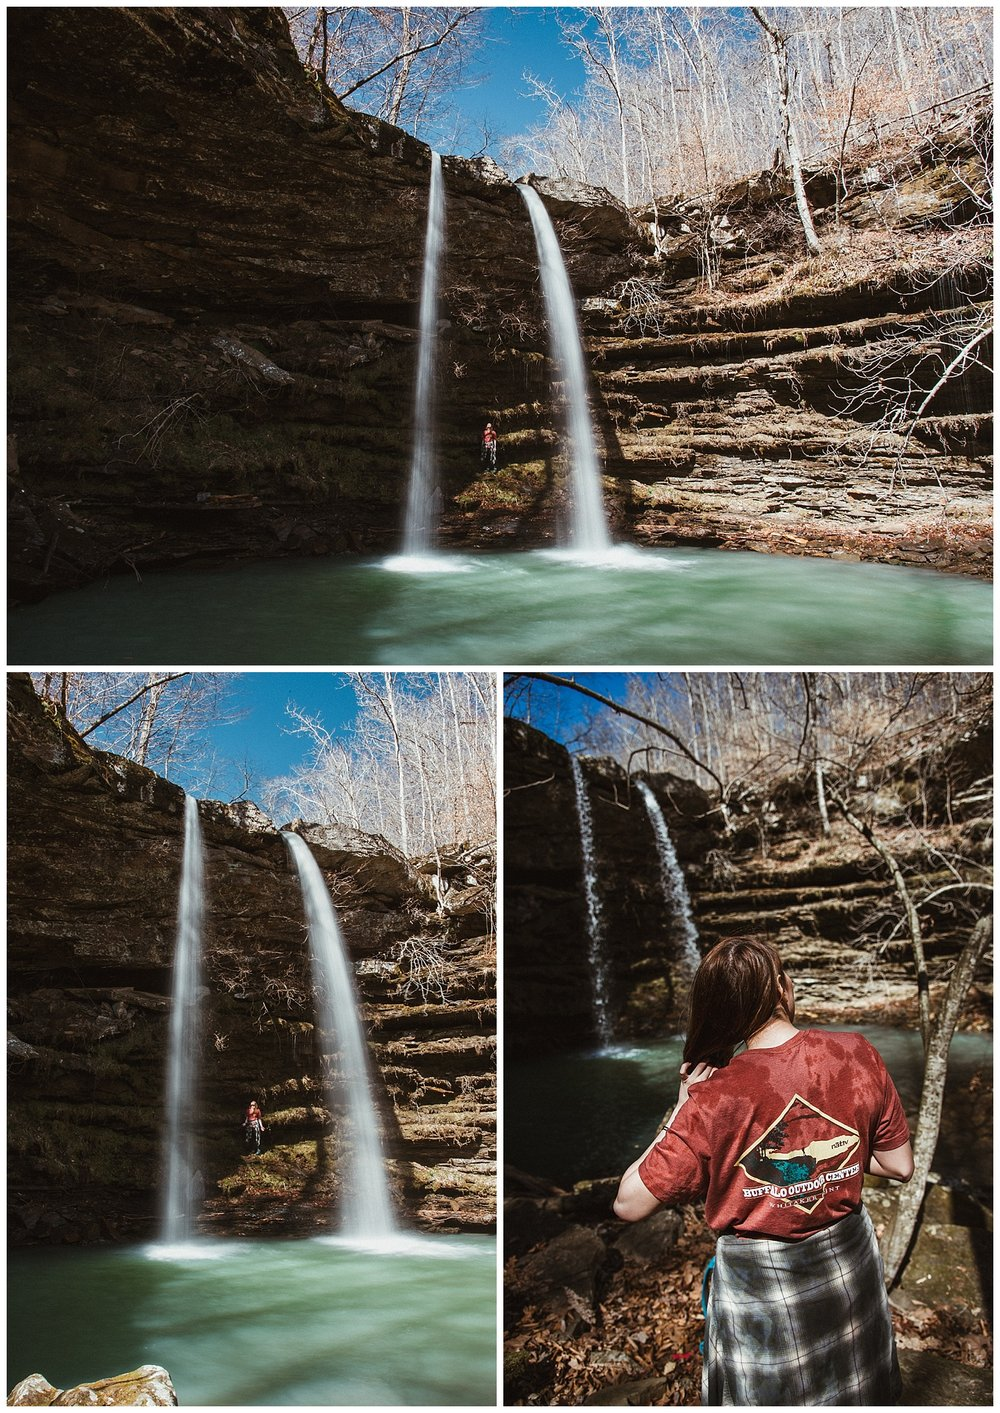 Compton's Double Falls from below with Hanna for scale